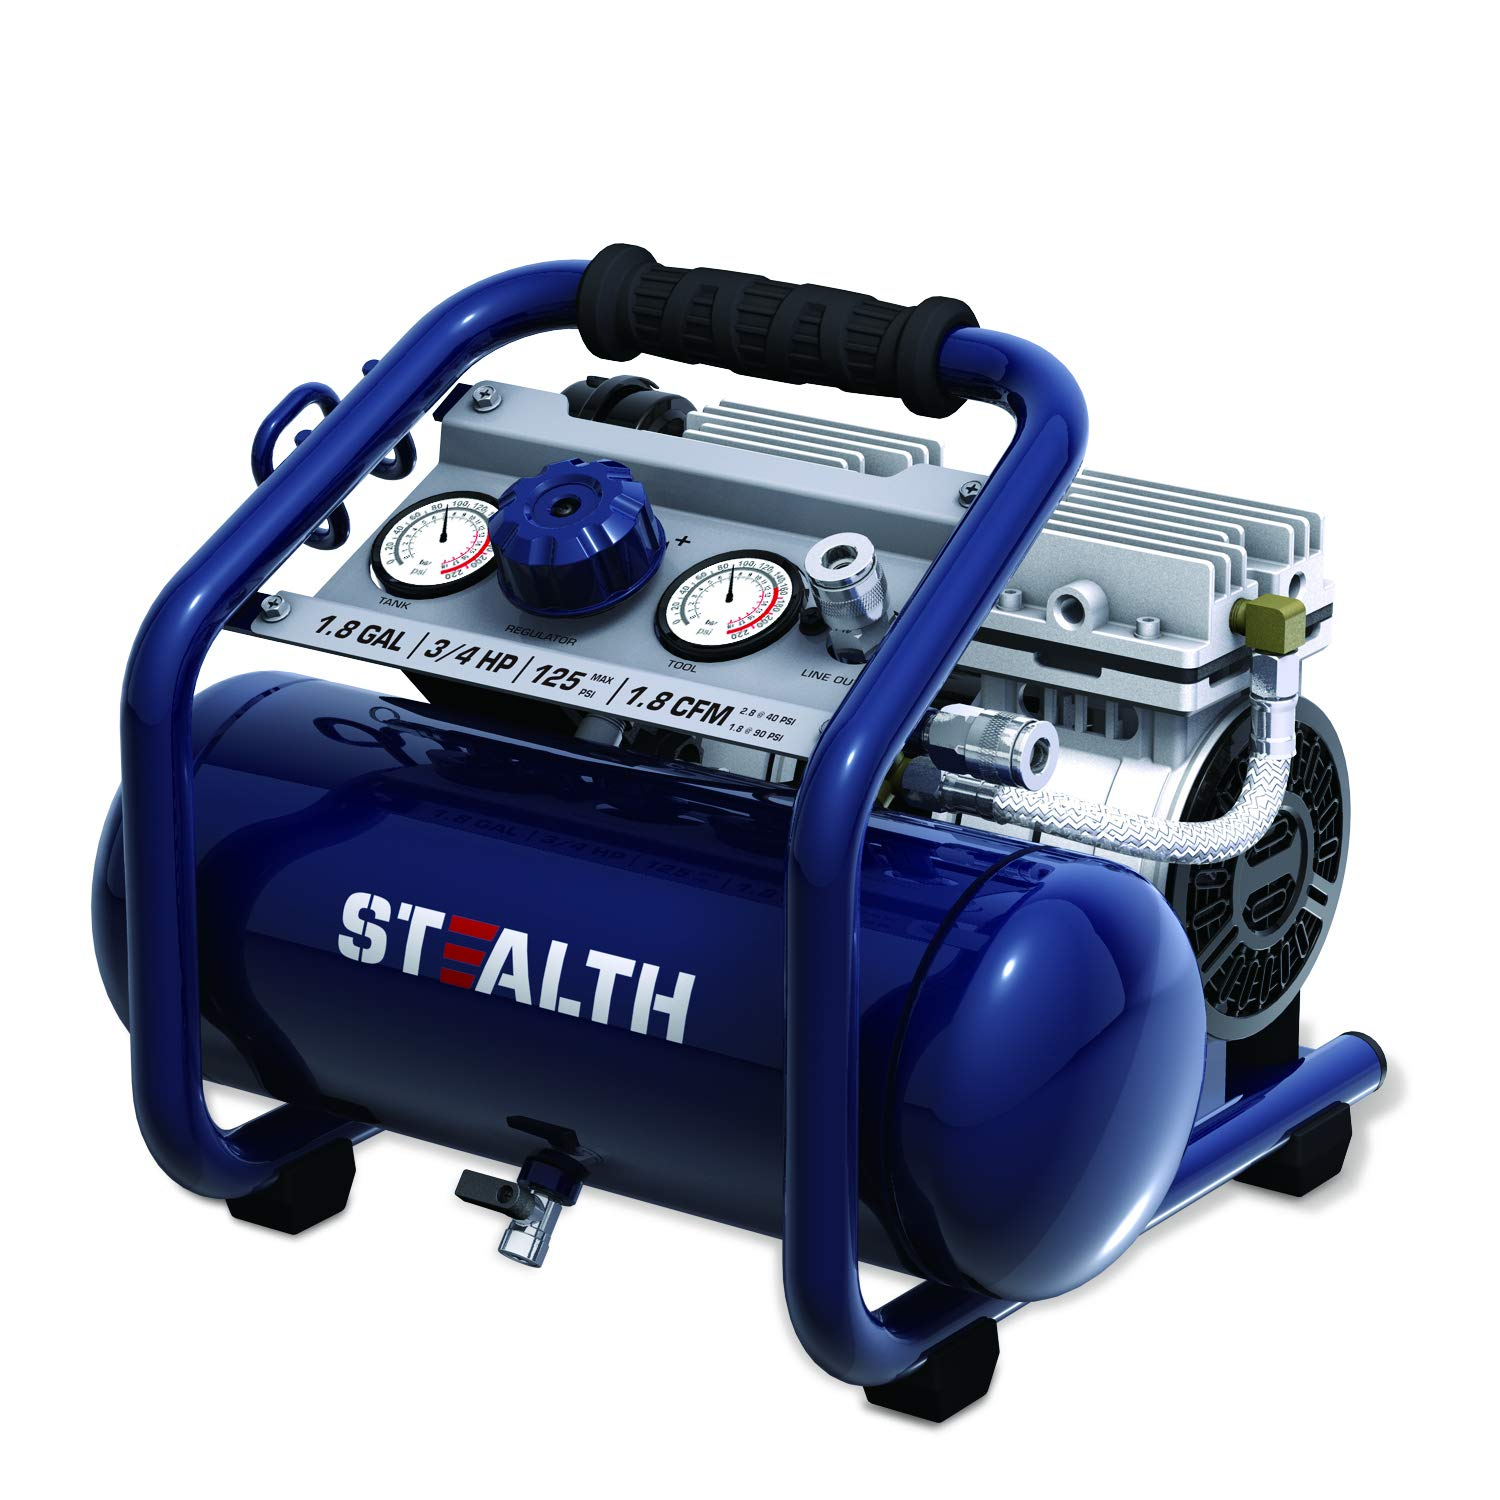 STEALTH Air Compressor, Ultra Quiet and Oil-Free 3/4 HP 2 Gallon with Low Voltage Start and Auto Drain Valve, Blue-SAQ-1234